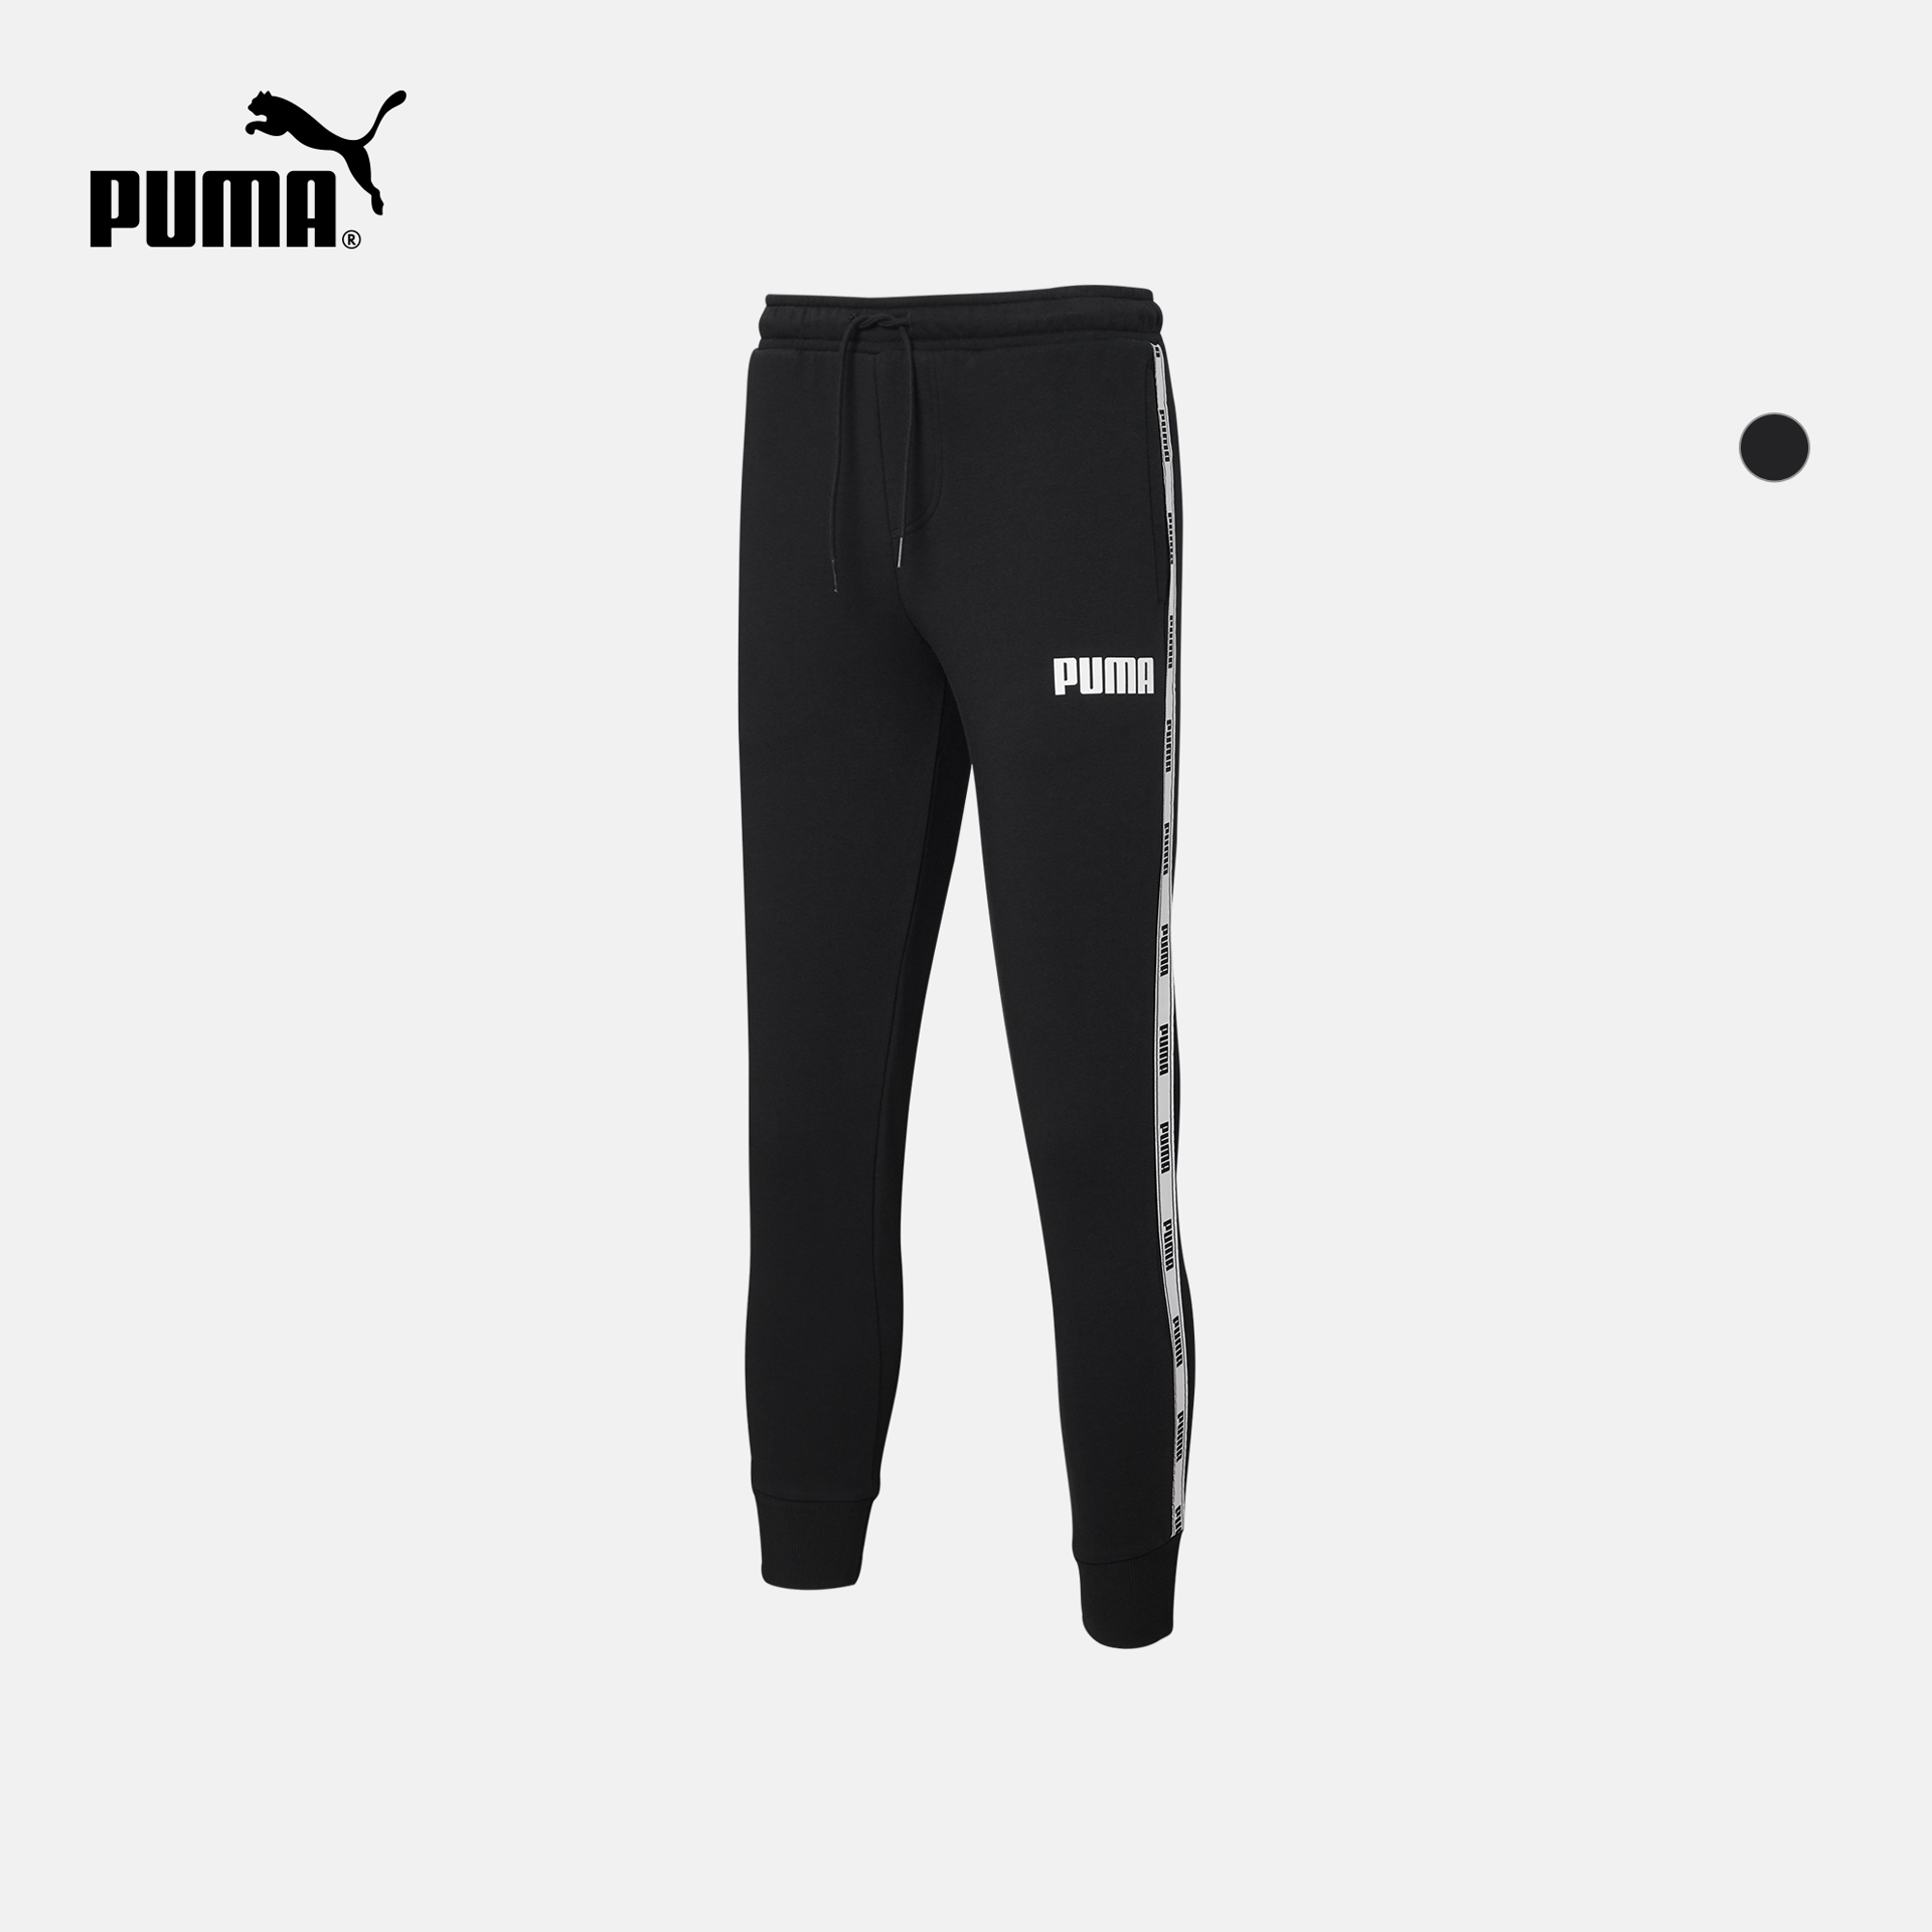 PUMA Hummer official authentic new men's casual string standard drawstring trousers TAPE 587003